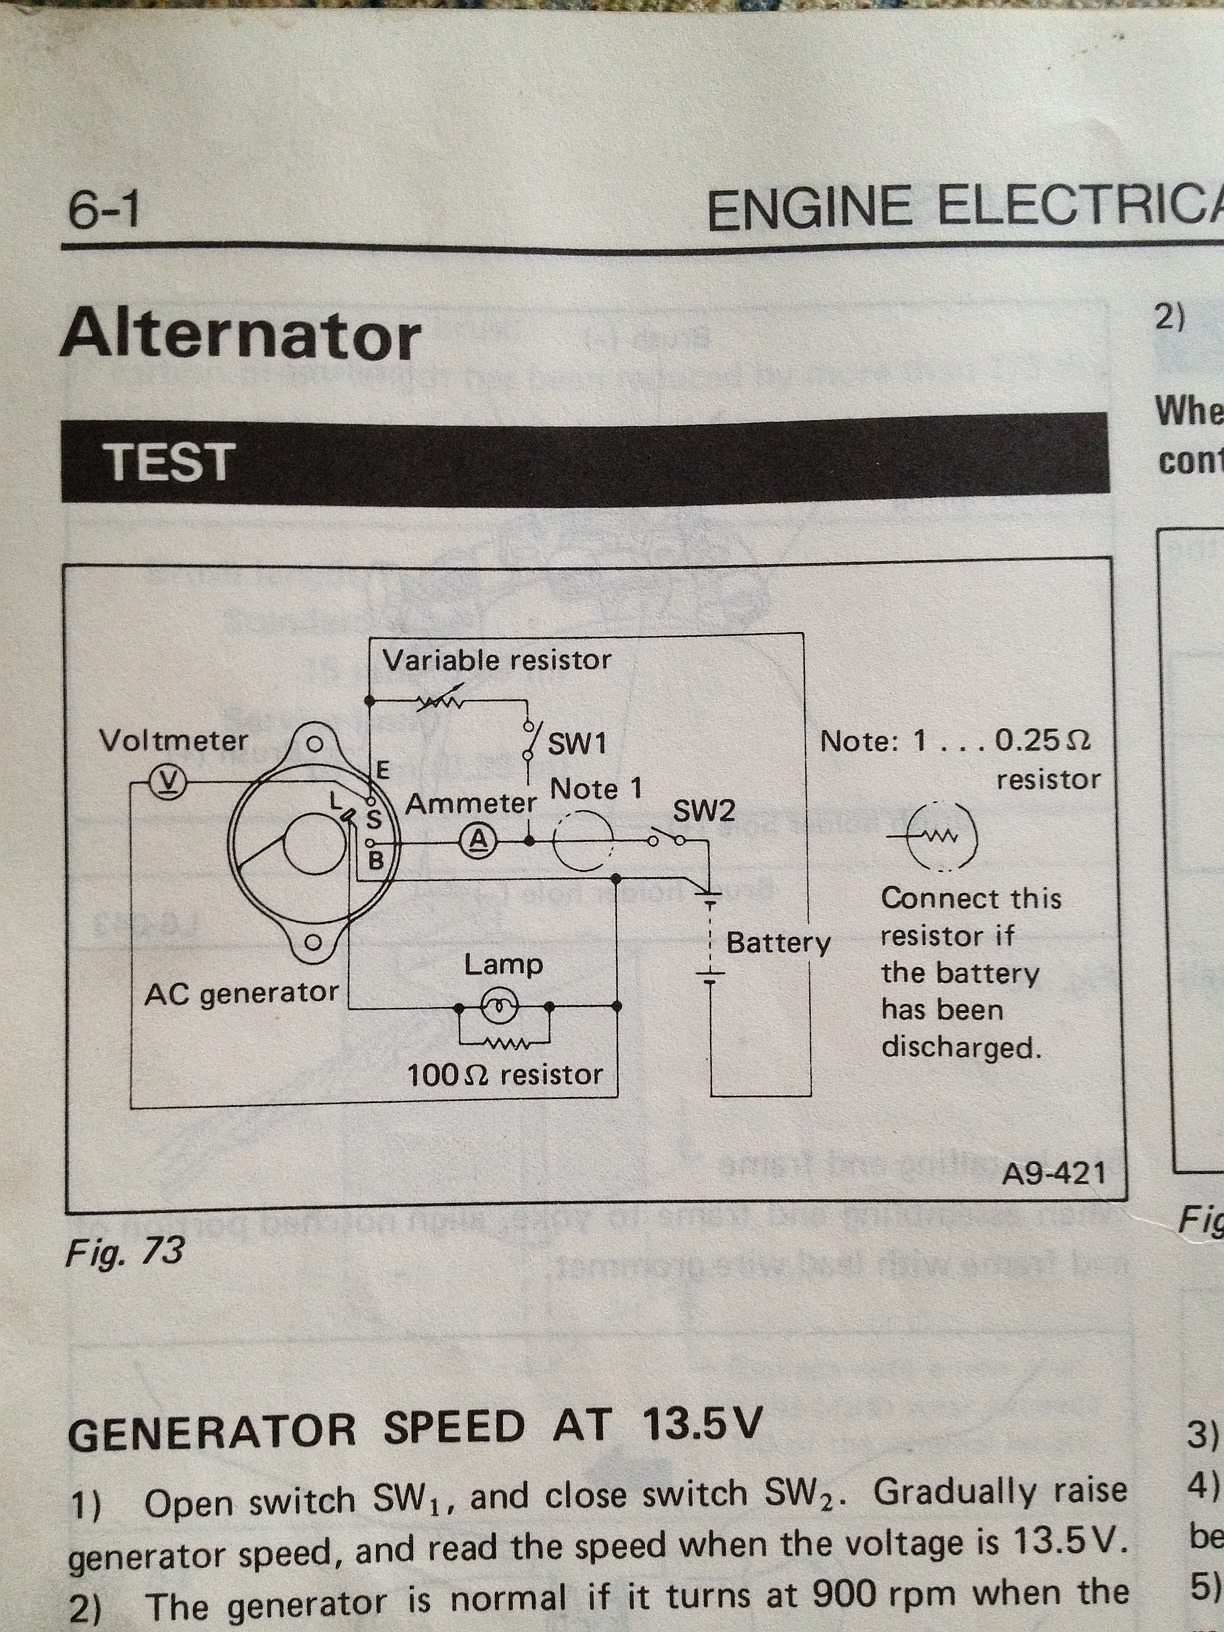 1985 Subaru Gl Wagon Alternator Wiring Diagram